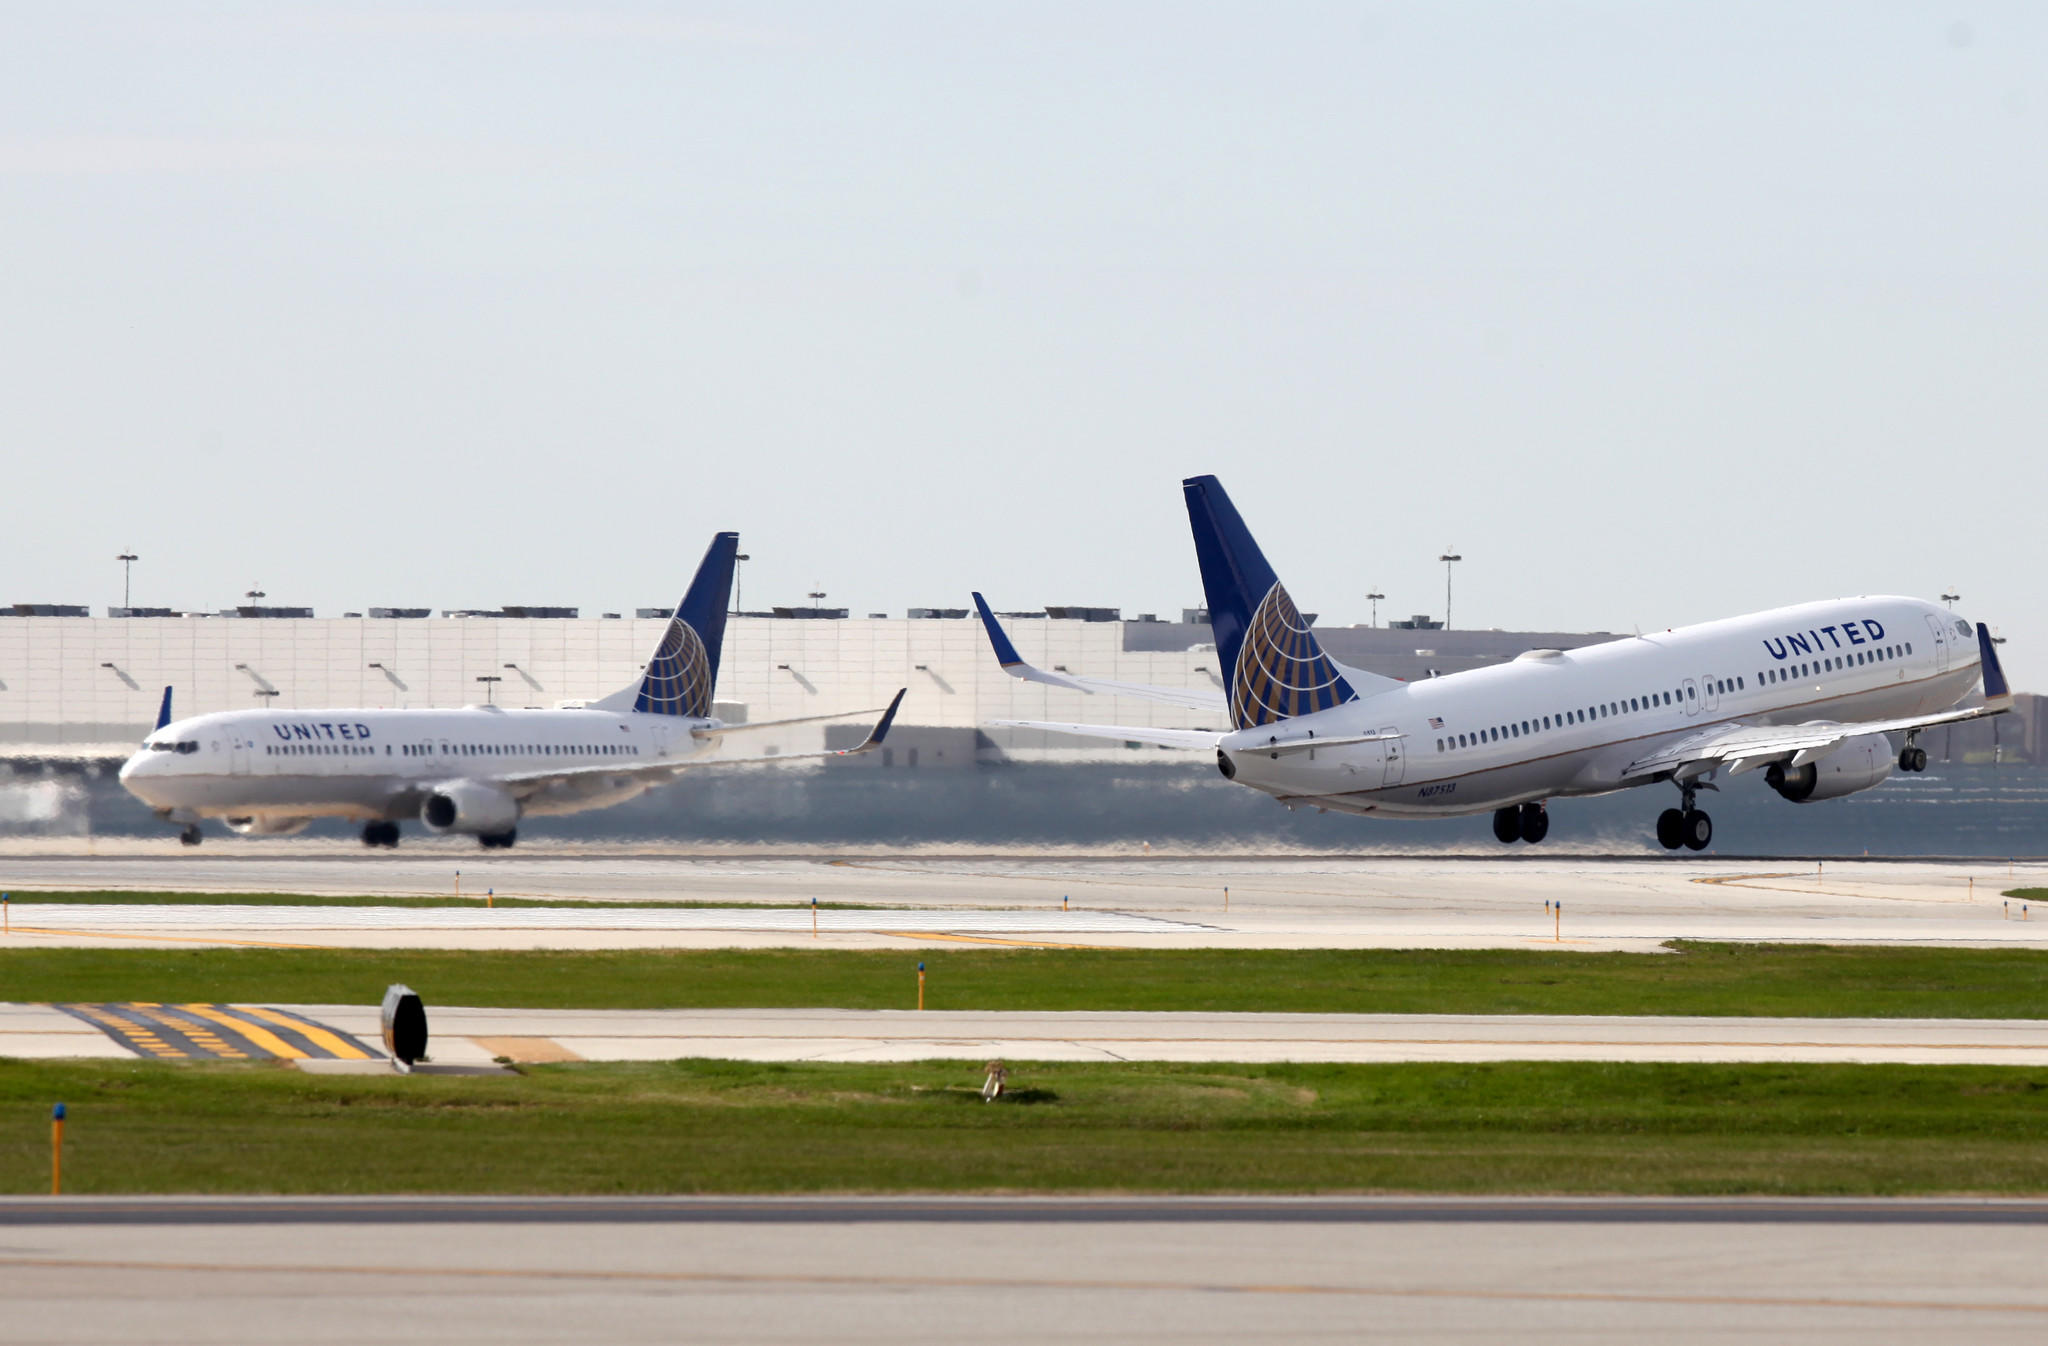 United Airlines flight takes off as another lands at Chicago O'Hare International Airport in Chicago, Friday, Oct. 25, 2013.